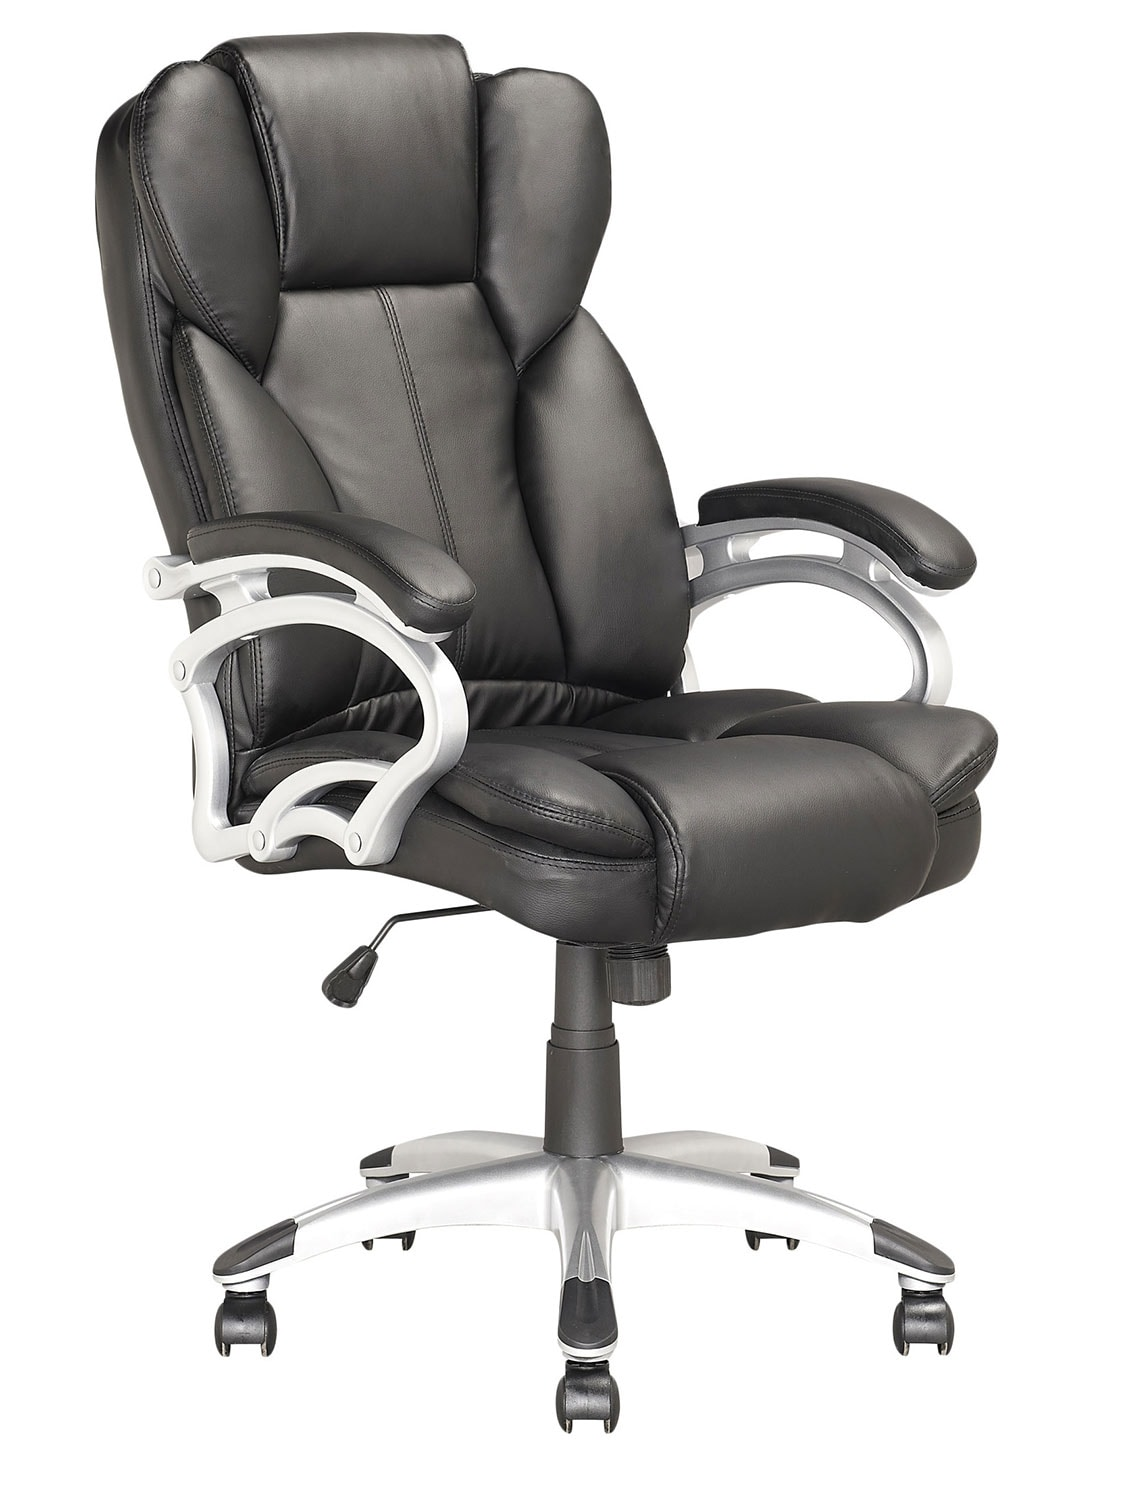 Home Office Furniture - Miami Foam-Padded Leatherette Executive Office Chair